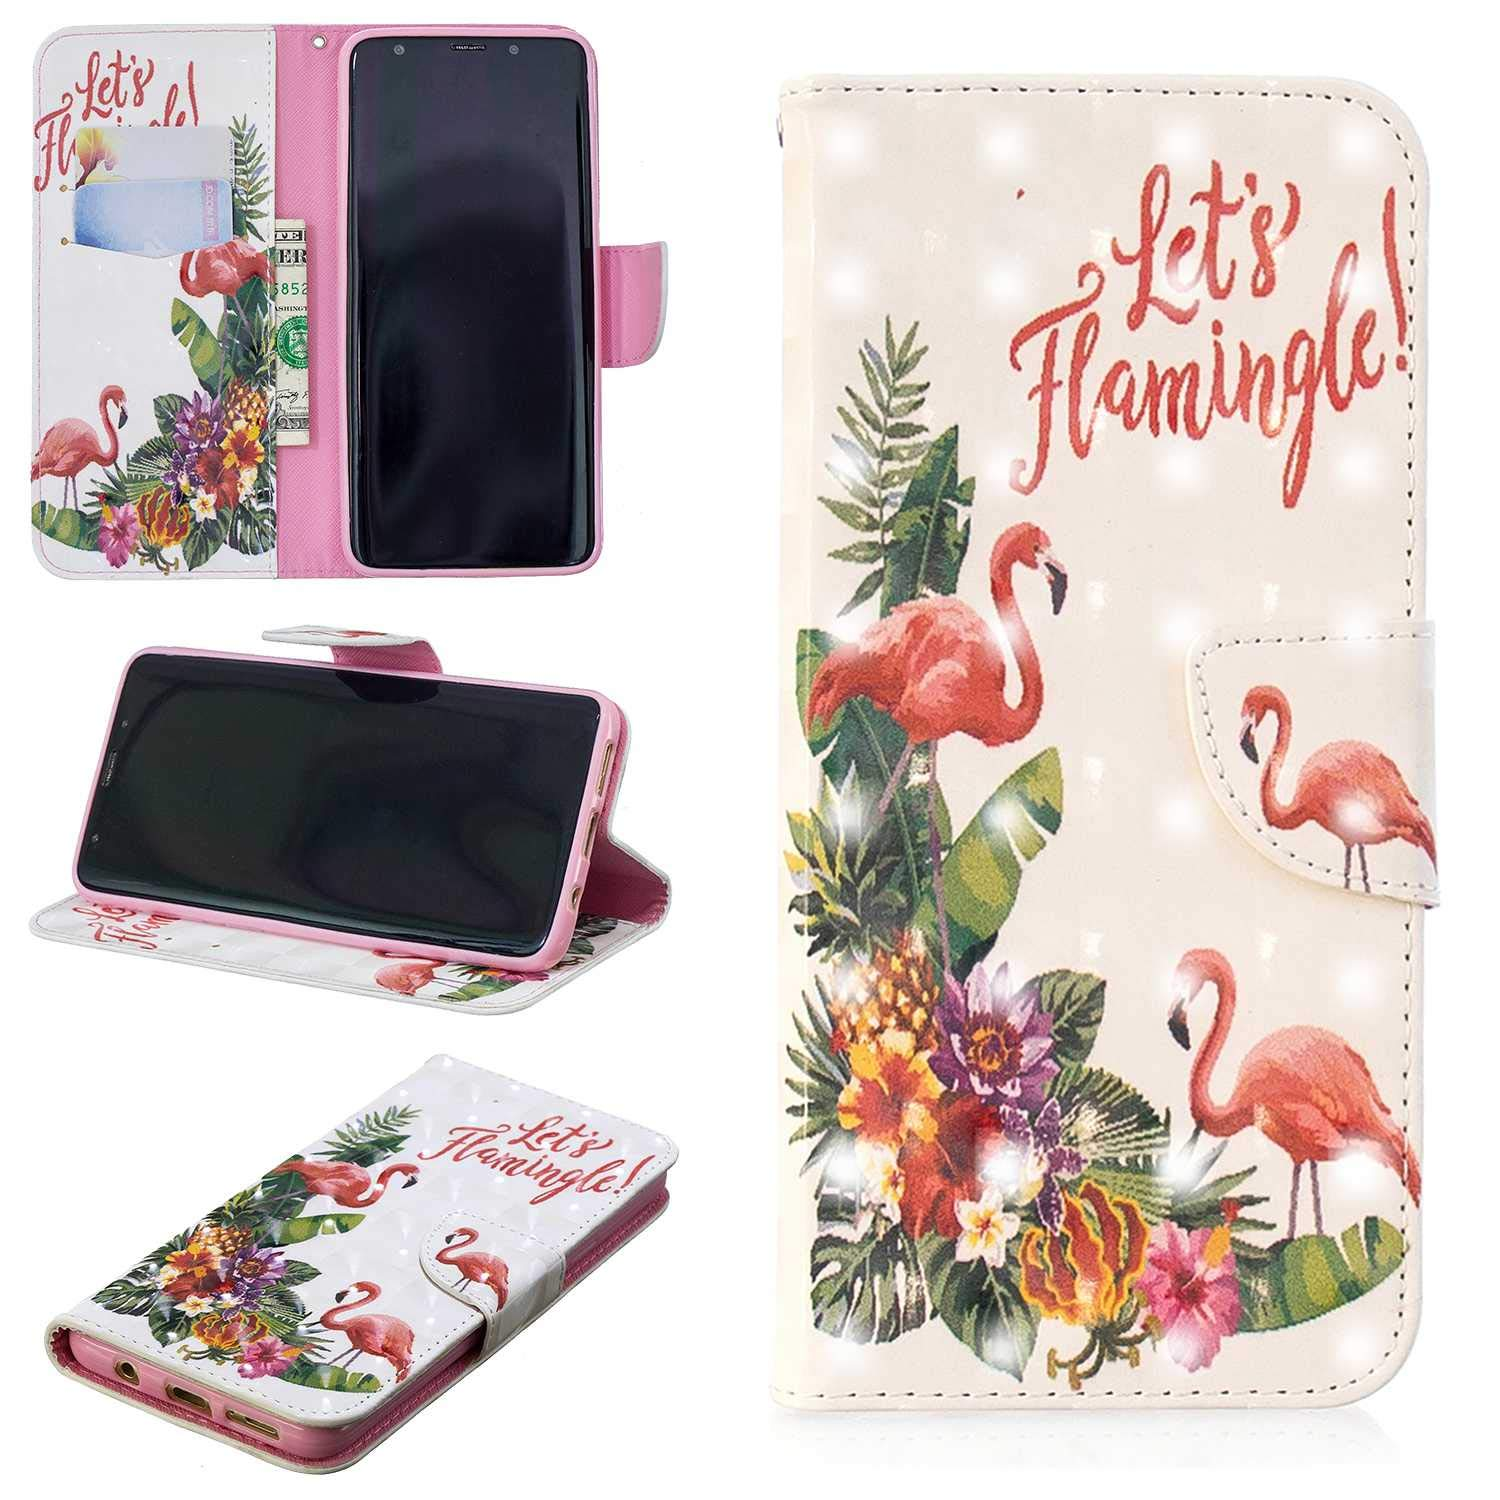 CUSKING Galaxy S9 Plus Case, Premium 3D Design Wallet Case Stand Flip Case with Card Holders and Magnetic Closure, Multi-Functional Shockproof Case for Samsung Galaxy S9 Plus - Flamingo